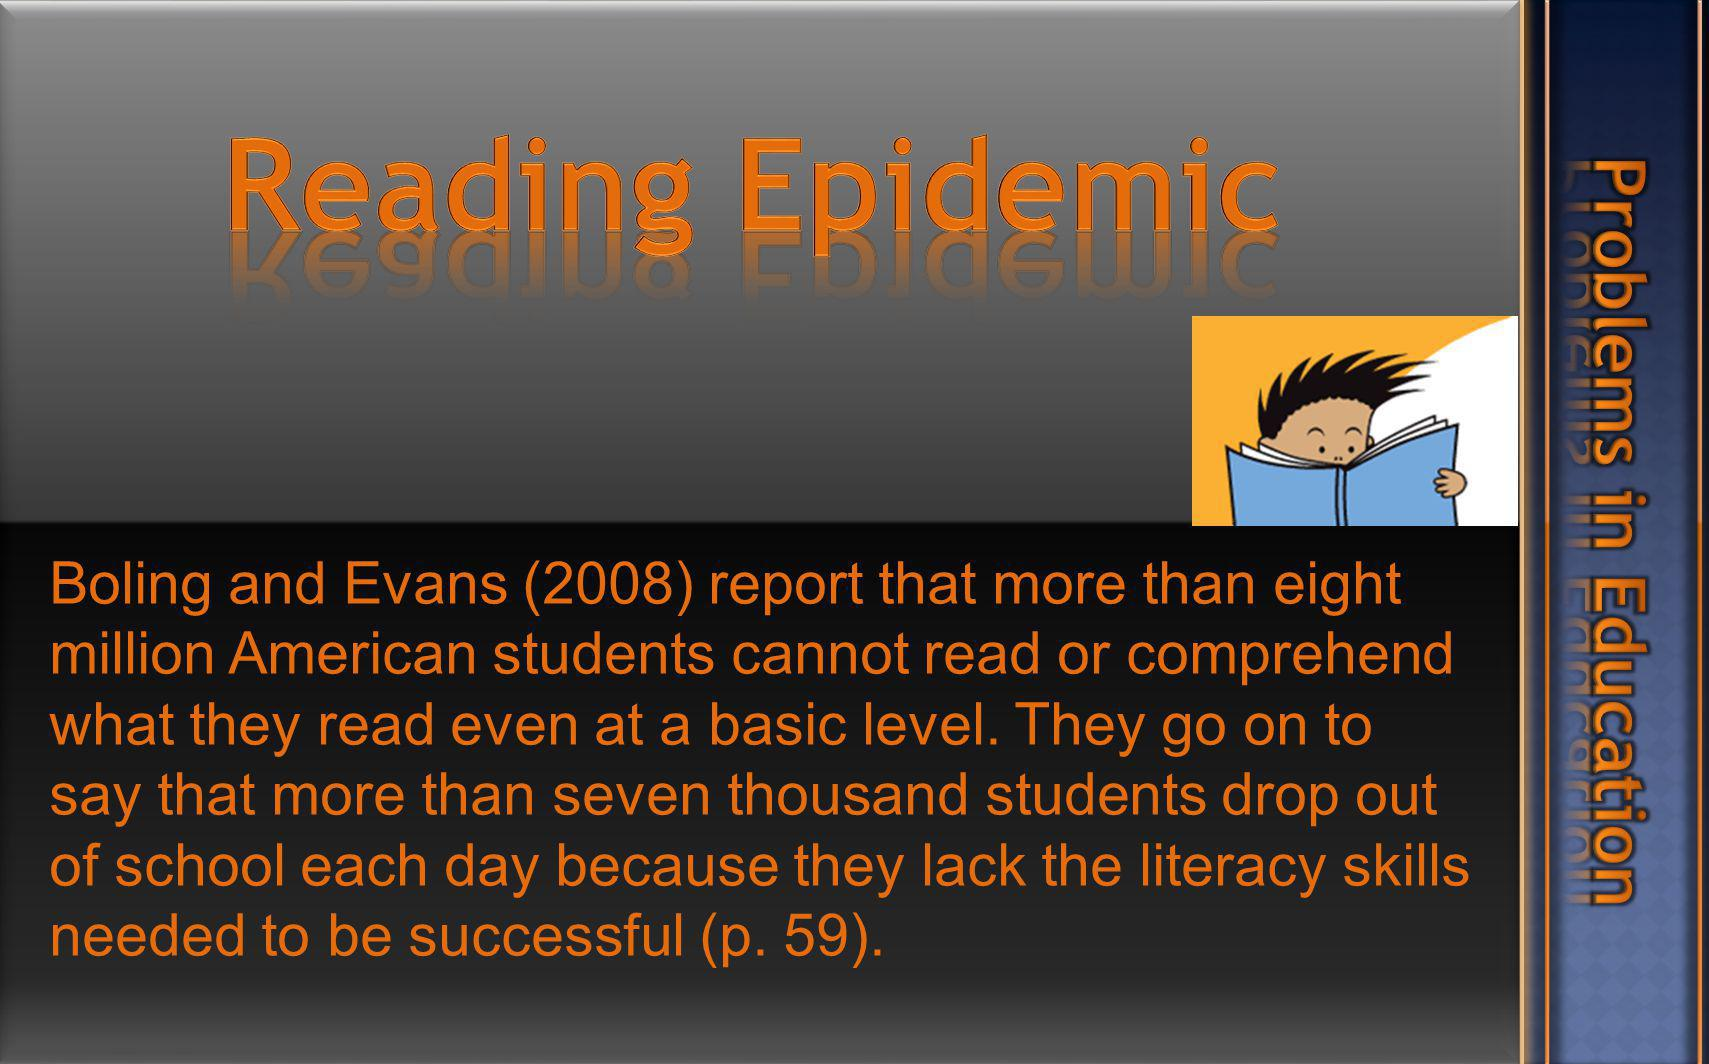 Boling and Evans (2008) report that more than eight million American students cannot read or comprehend what they read even at a basic level.